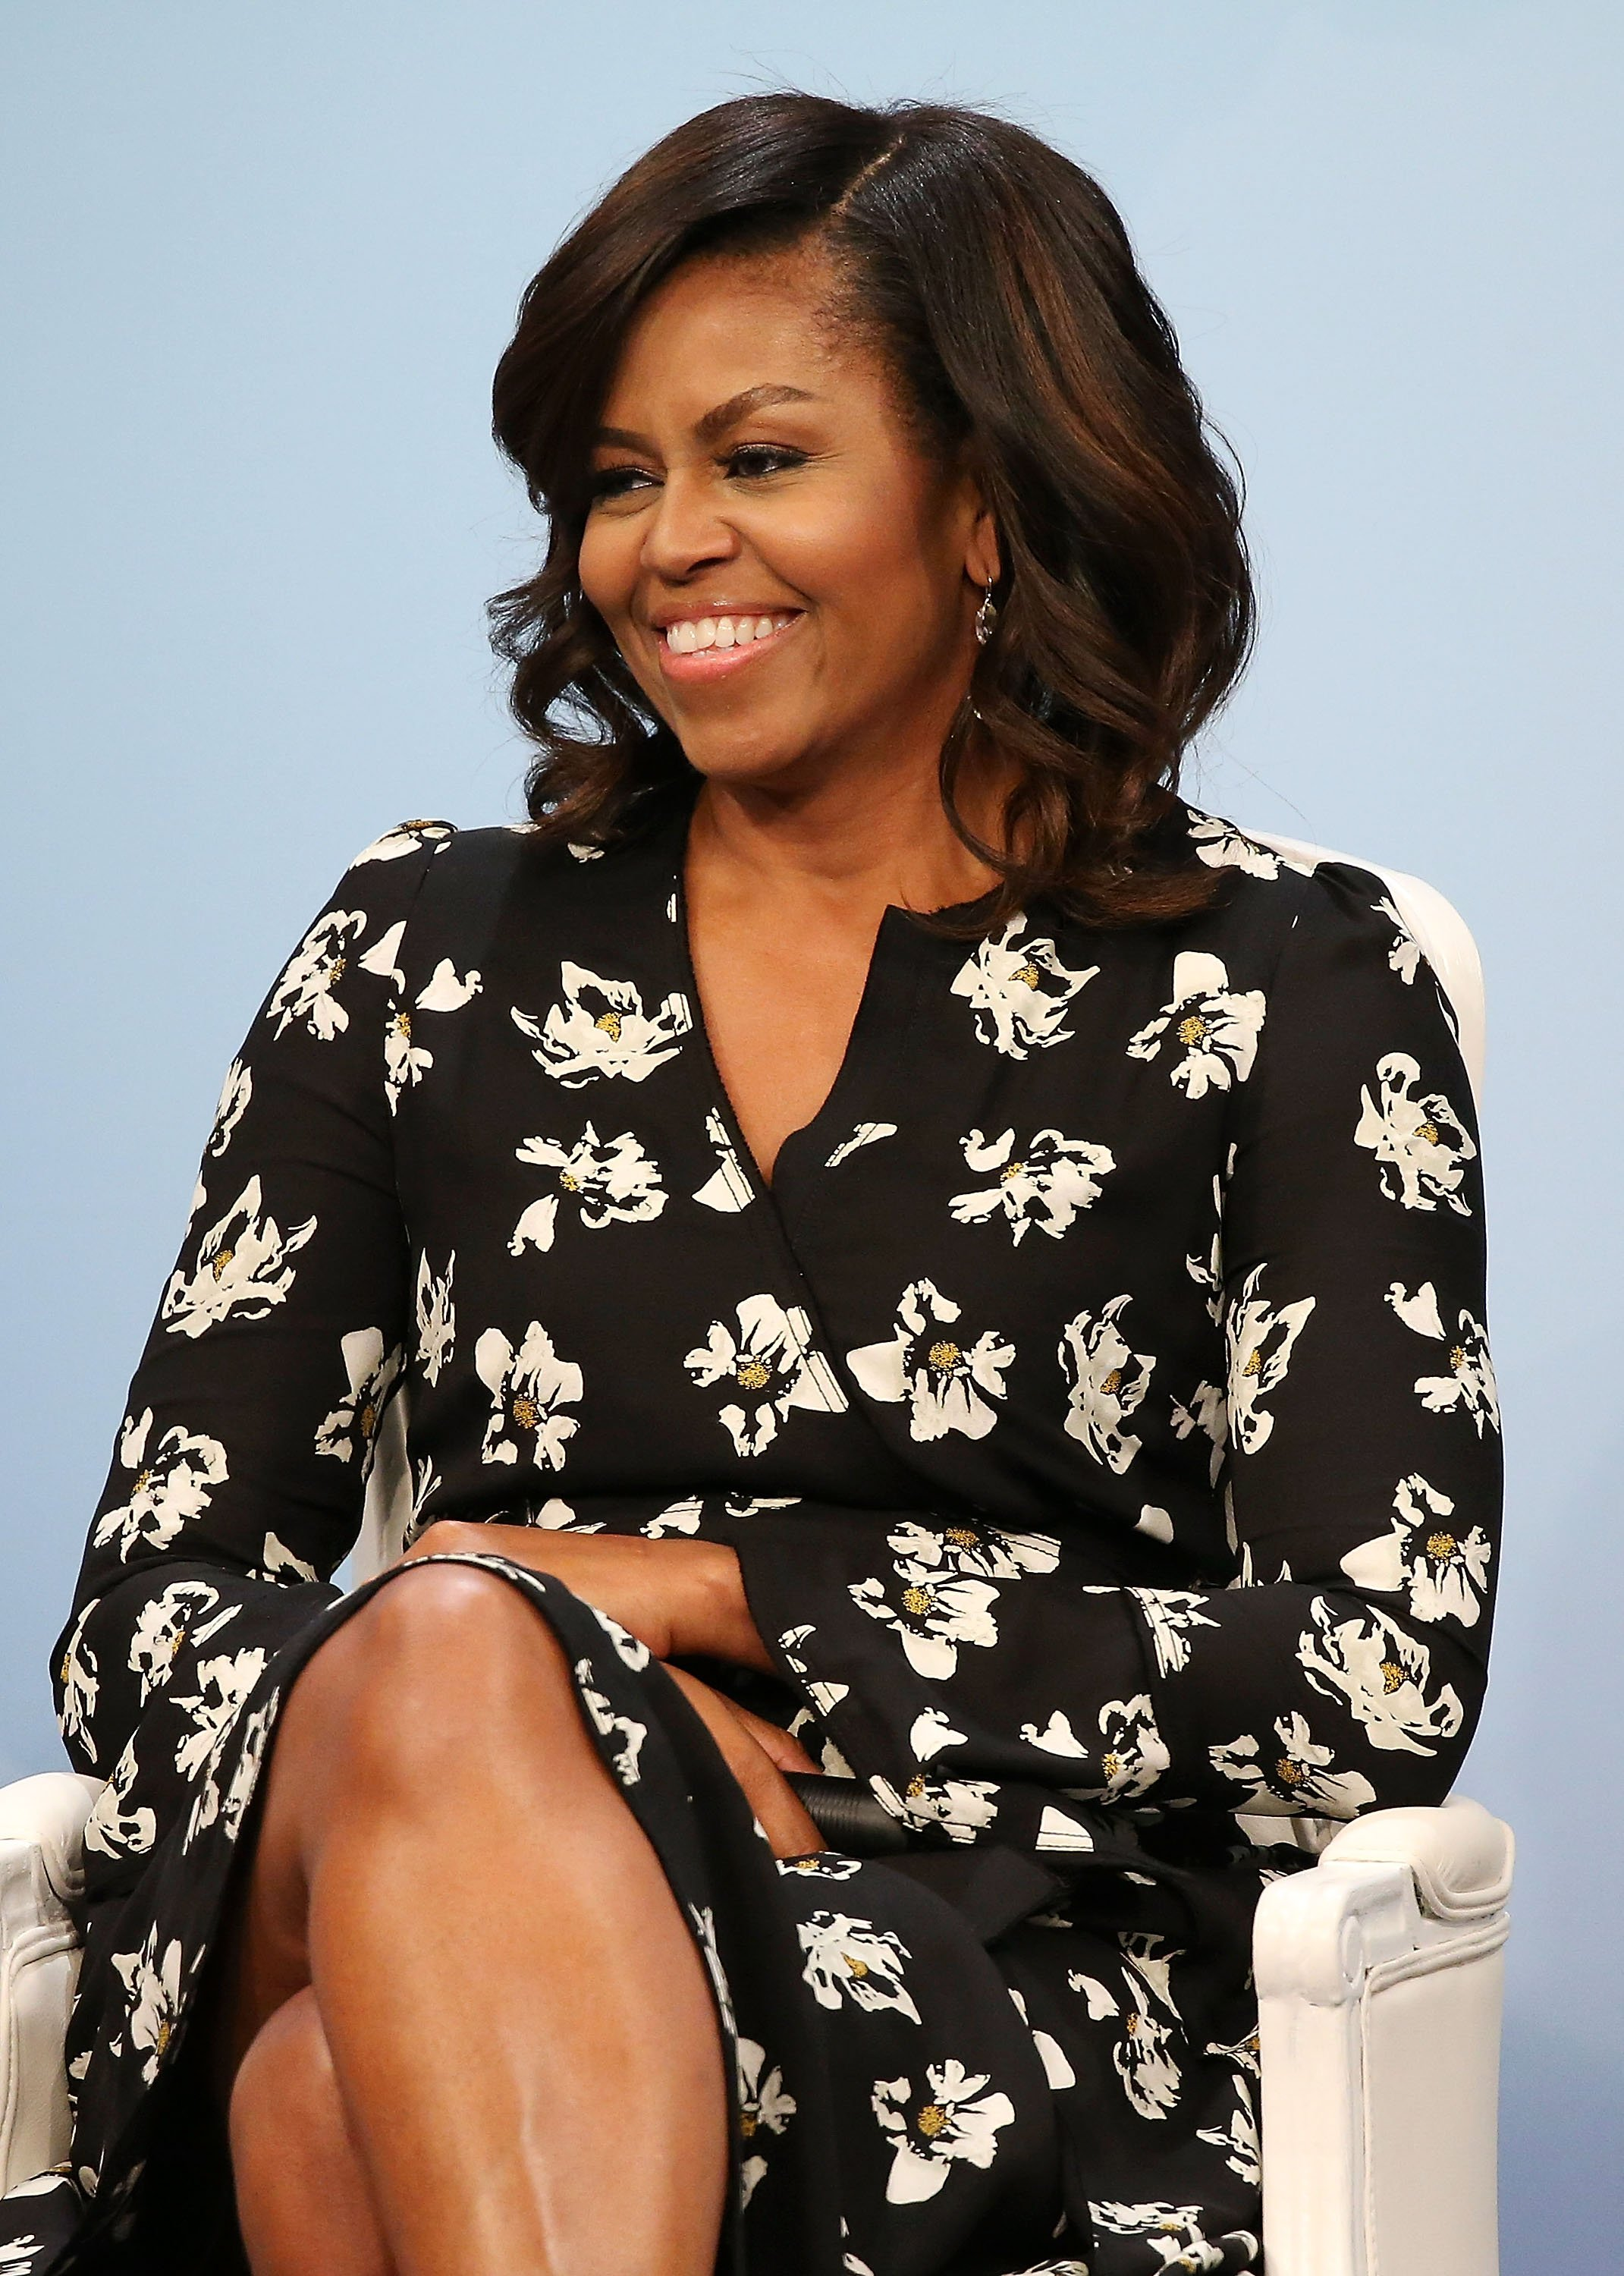 Michelle Obama at a panel discussion about girls' education in October 2016. | Photo: Getty Images